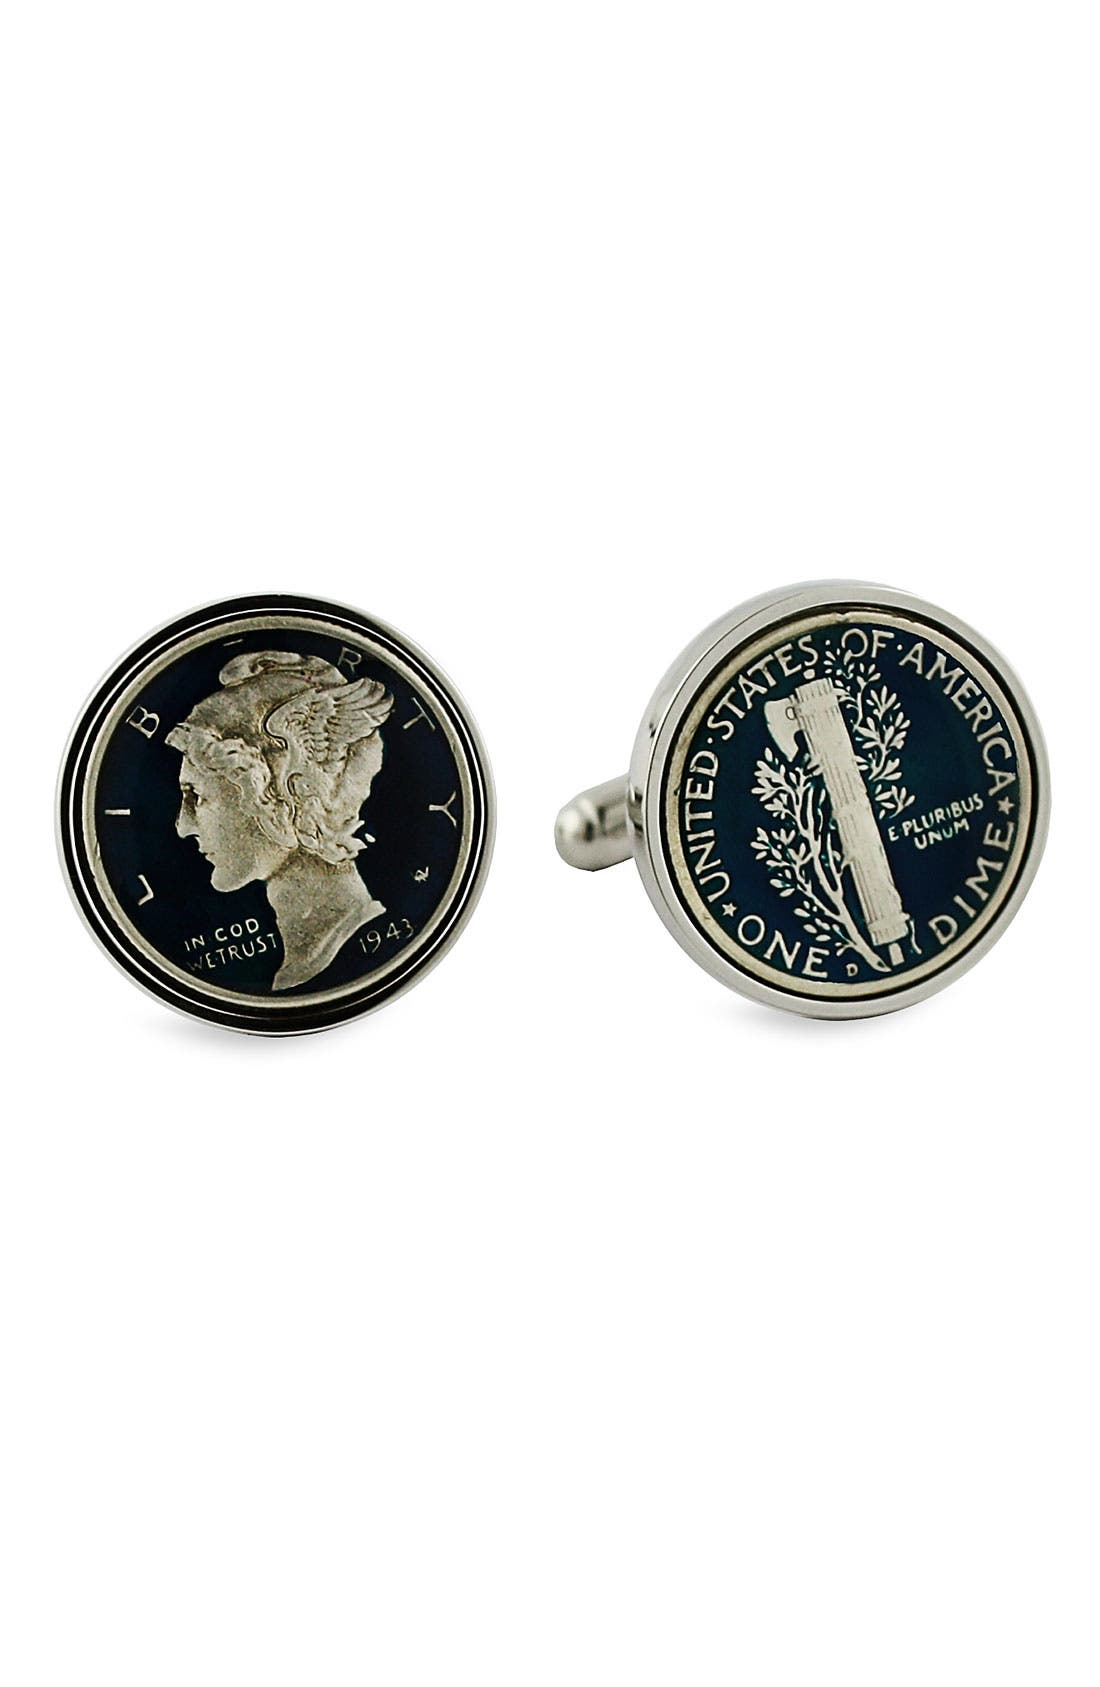 'Mercury Dime' Cuff Links,                             Main thumbnail 1, color,                             MERCURY DIME